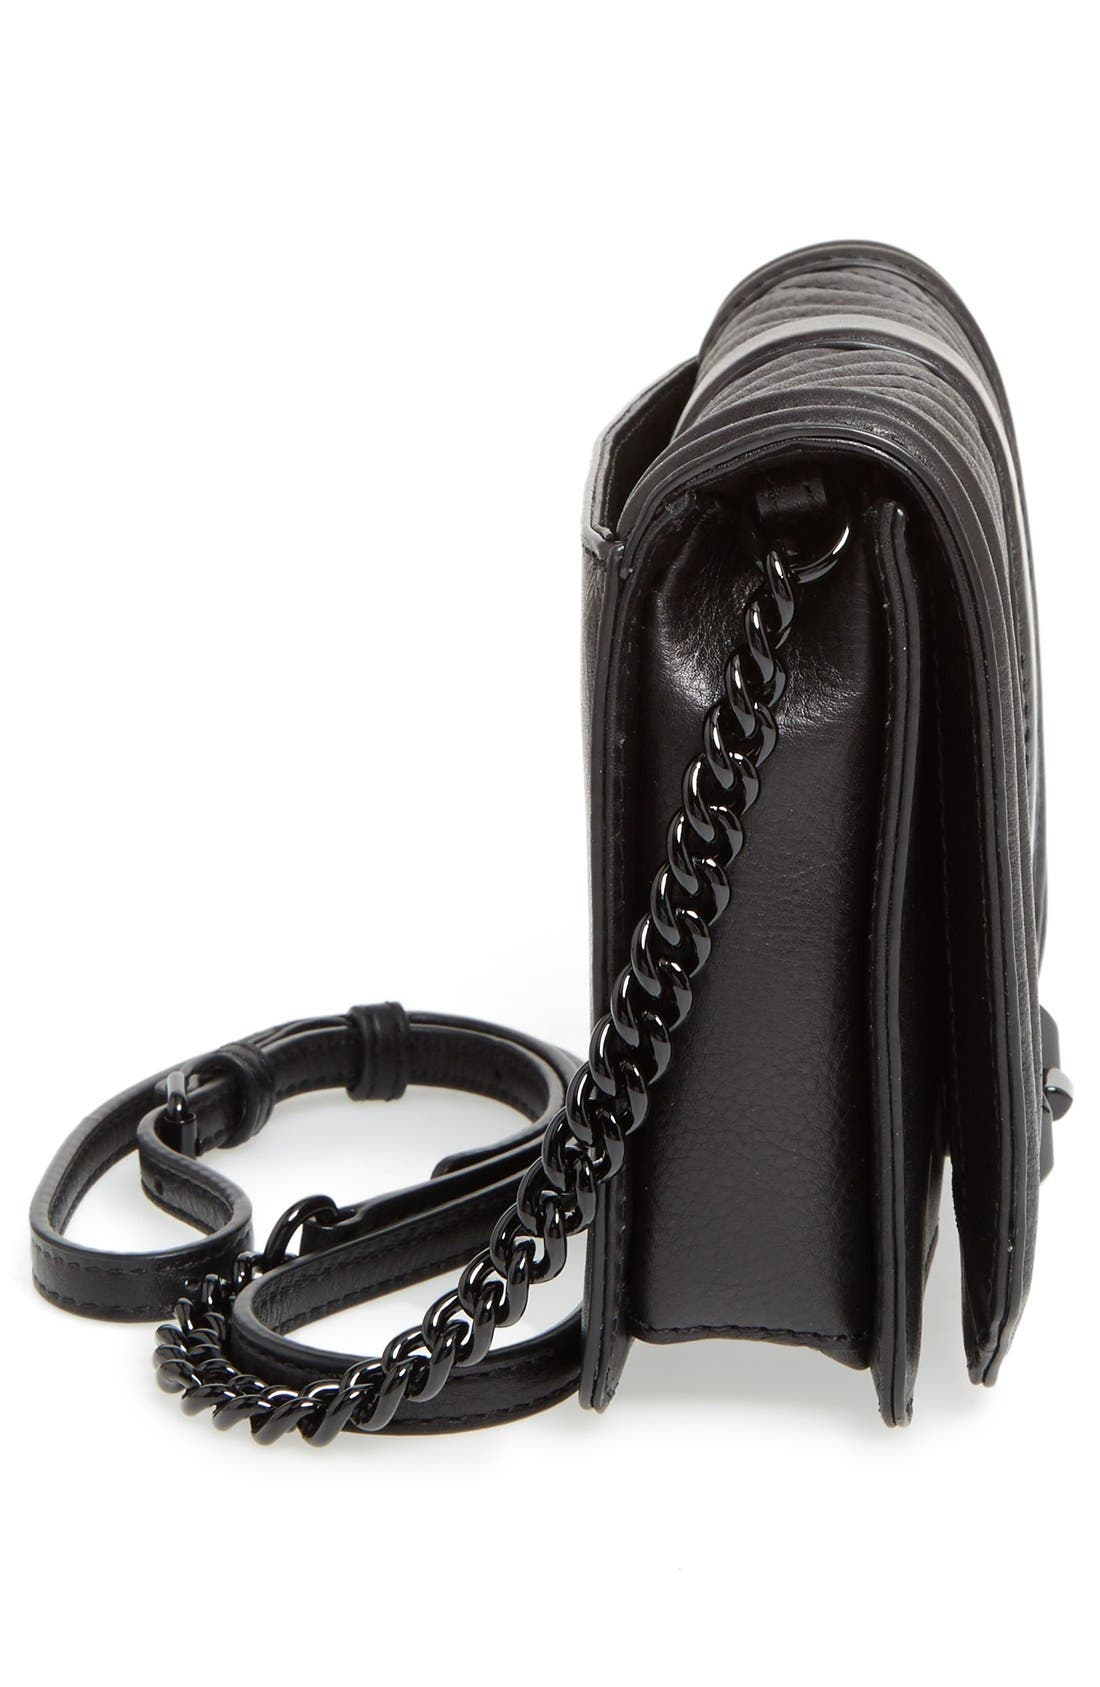 REBECCA MINKOFF, Small Love Leather Crossbody Bag, Alternate thumbnail 7, color, BLACK/ BLACK HRDWR